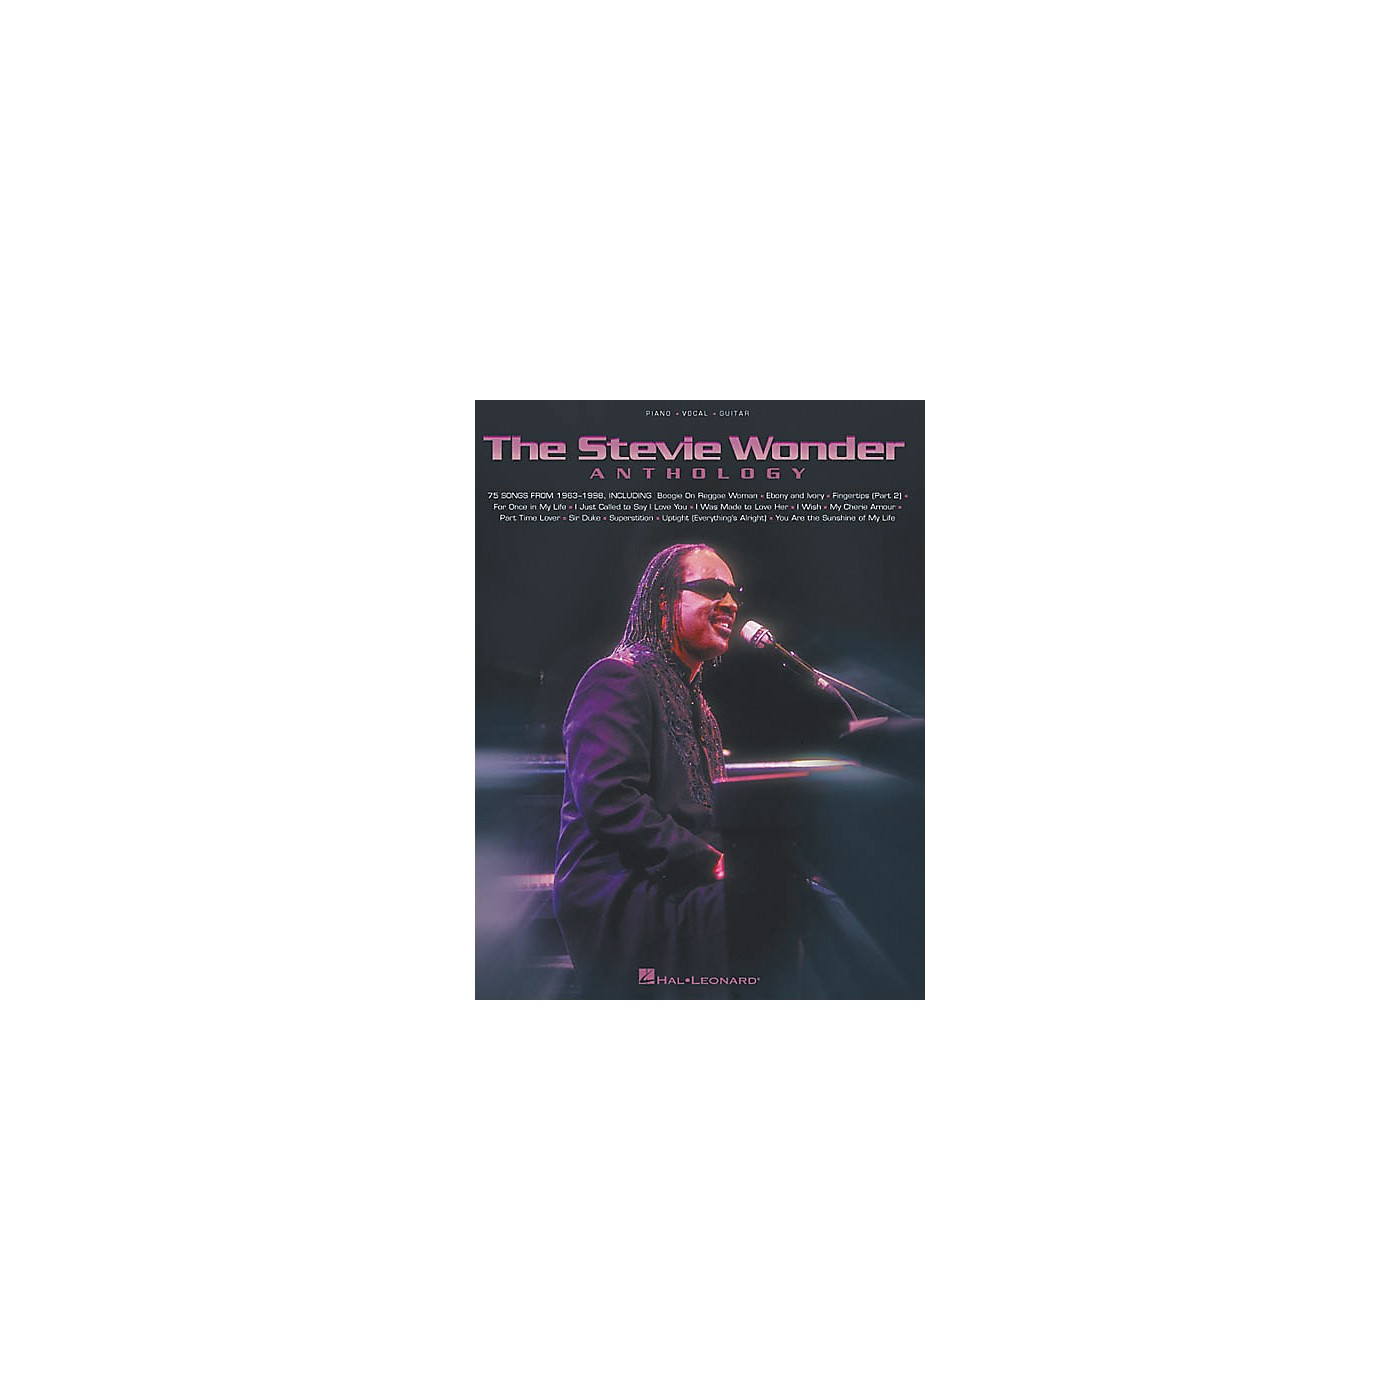 Hal Leonard The Stevie Wonder Anthology Piano, Vocal, Guitar Songbook thumbnail